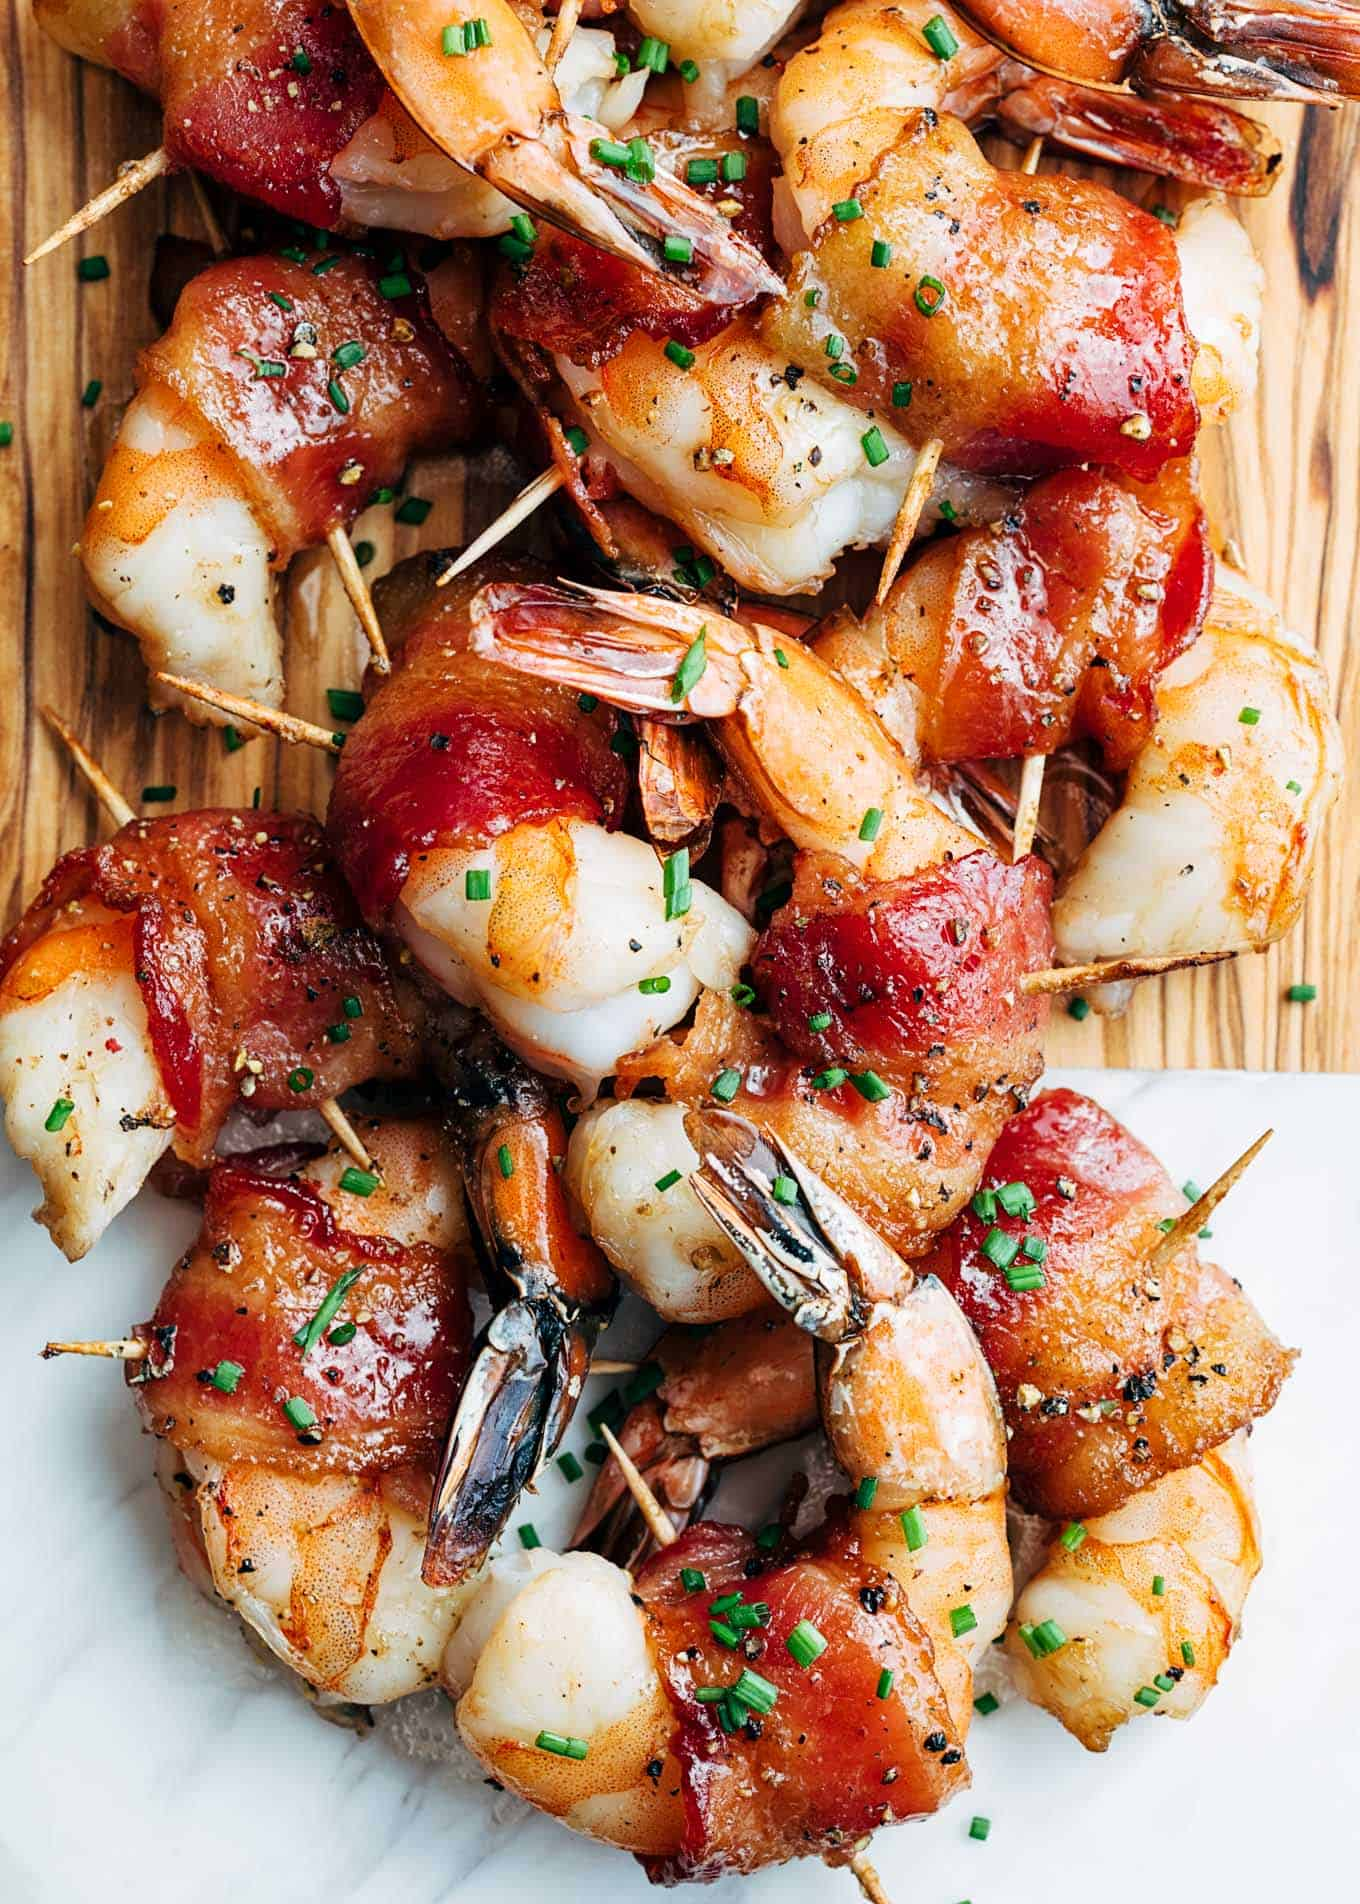 Bacon wrapped shrimp piled on a marble wooden serving board with toothpicks in them